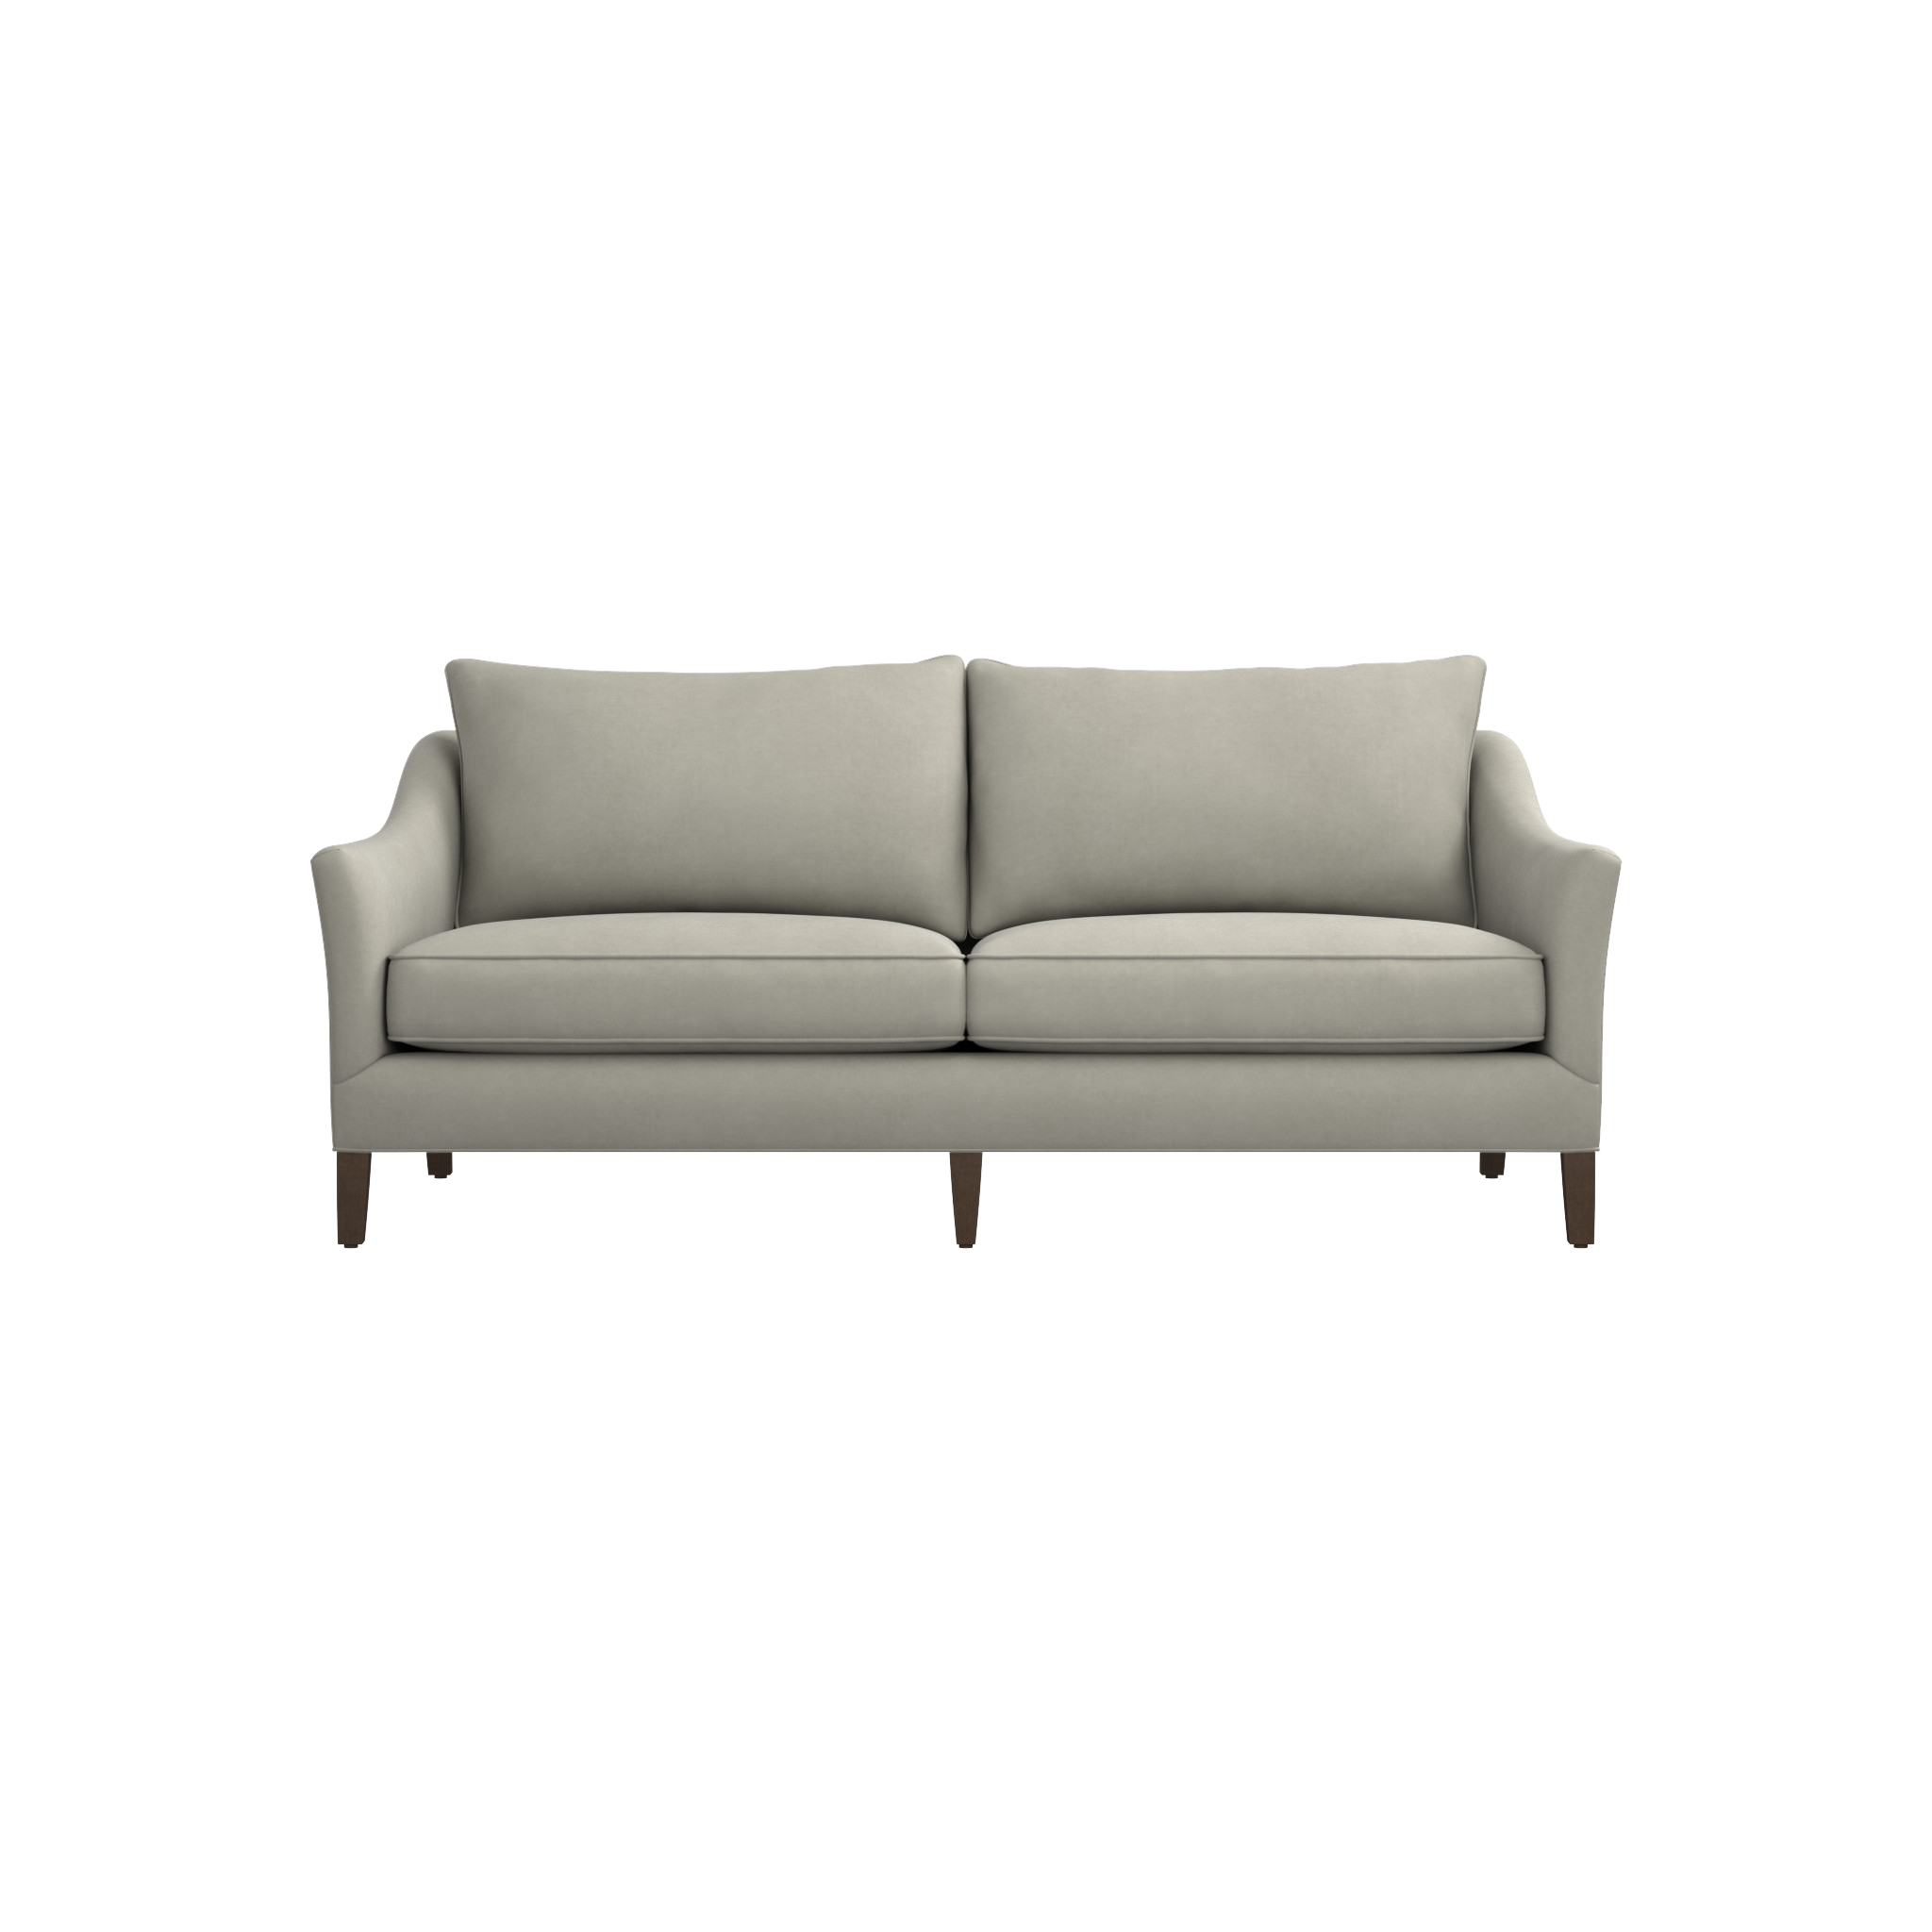 Shop Keely Apartment Sofa. Sophisticated And Durable, This Smaller Scale  Sofa Strikes The